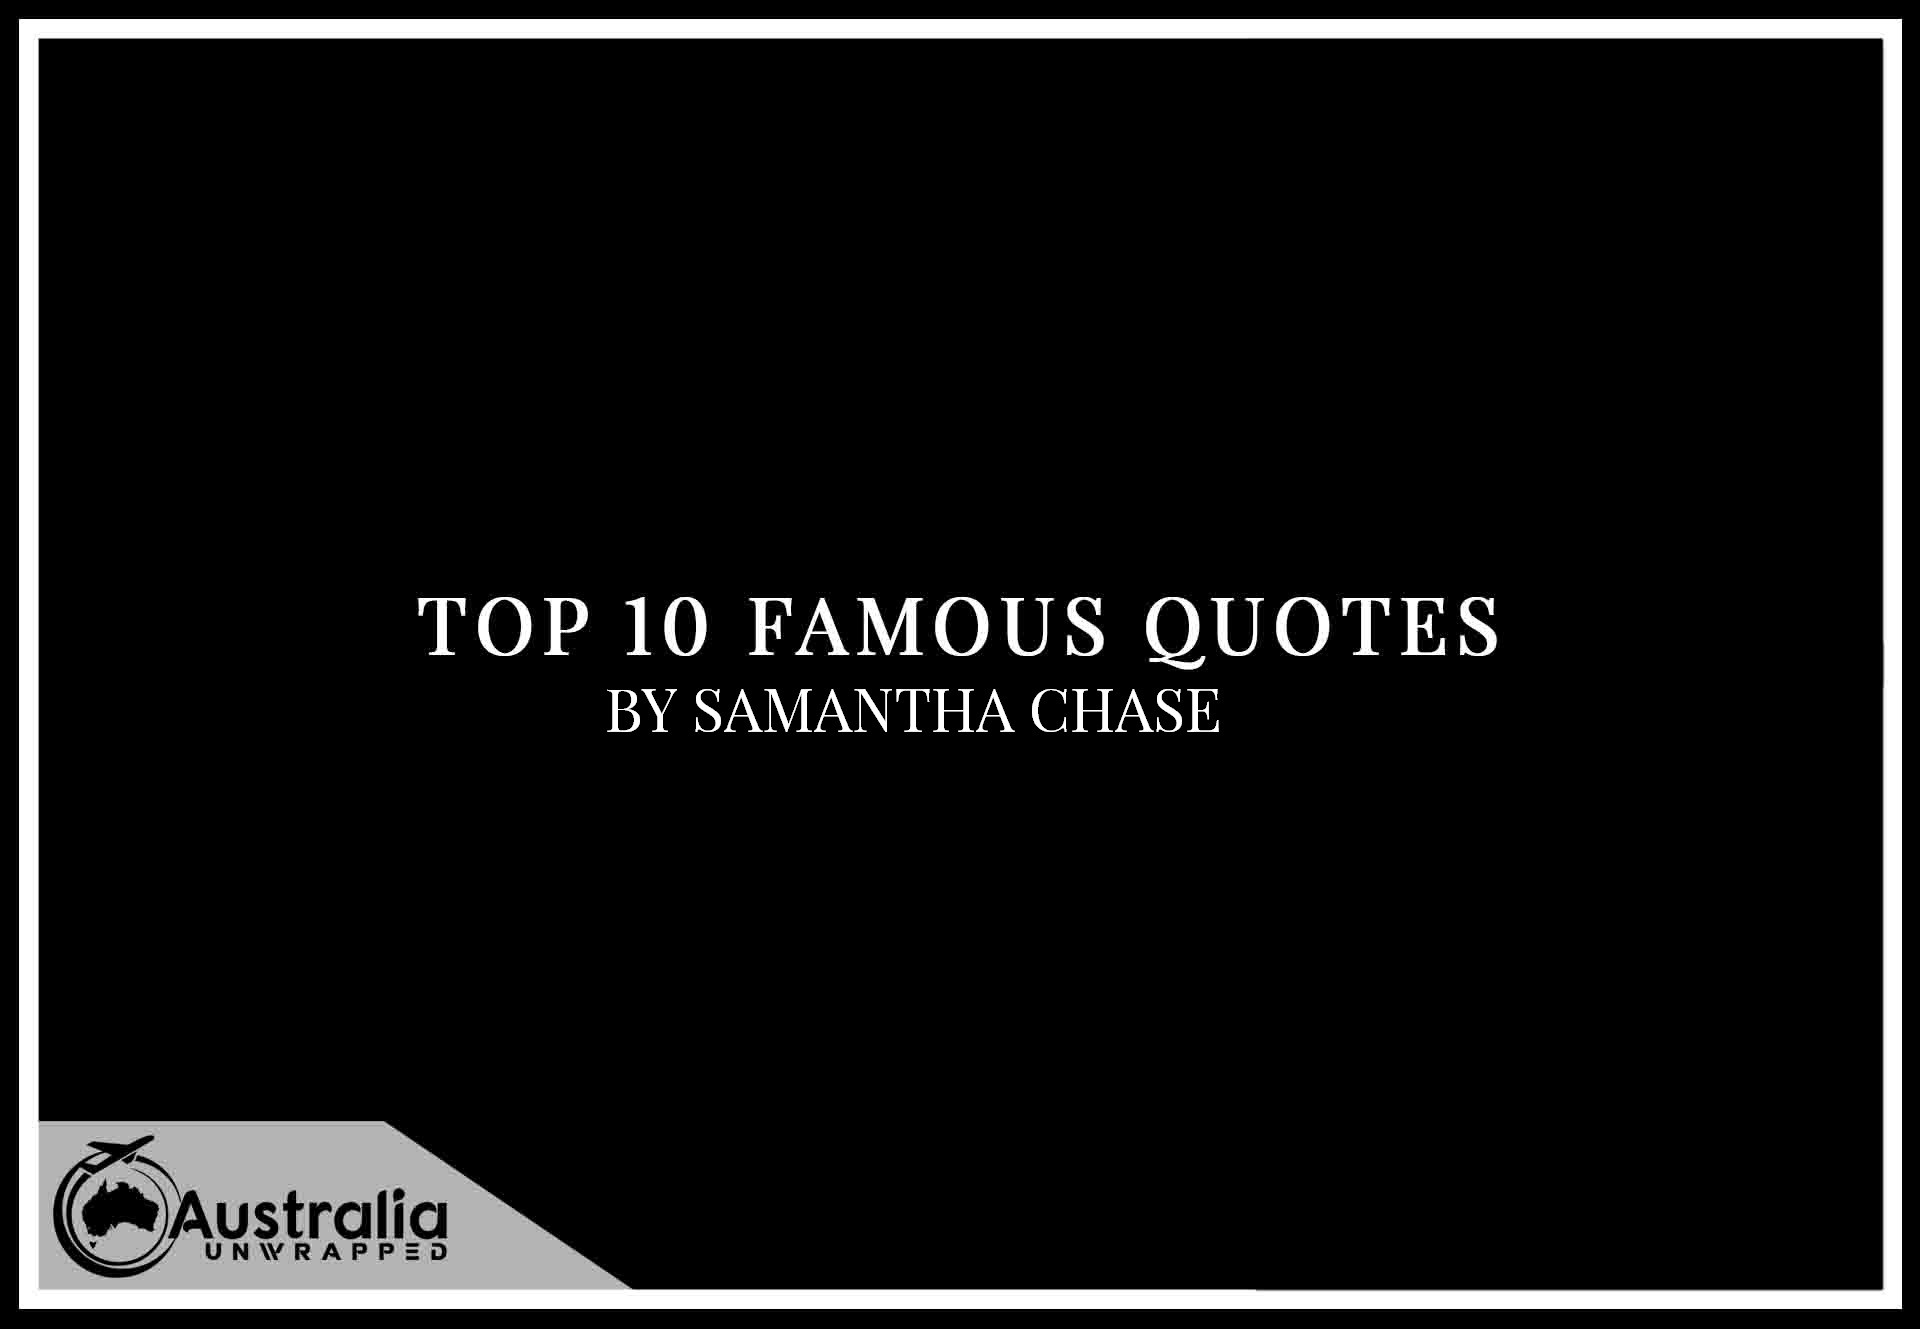 Top 10 Famous Quotes by Author Samantha Chase